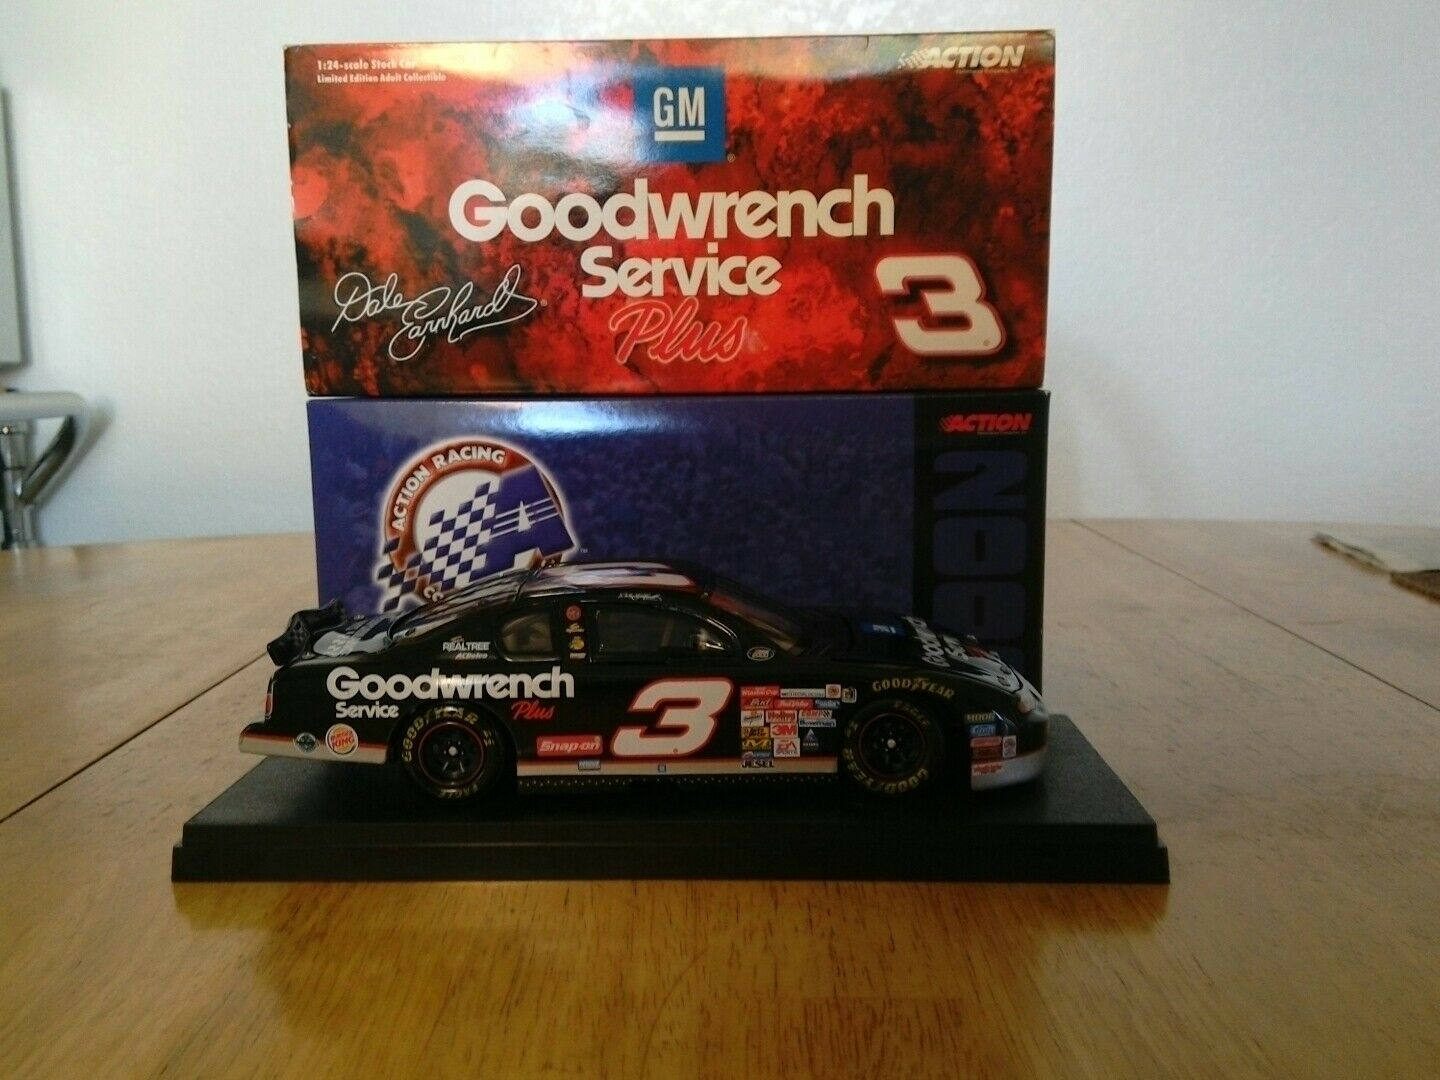 Dale Earnhardt sr  3 GM Goodwrench Service Plus 2000 Monte Carlo 1 of 34,992